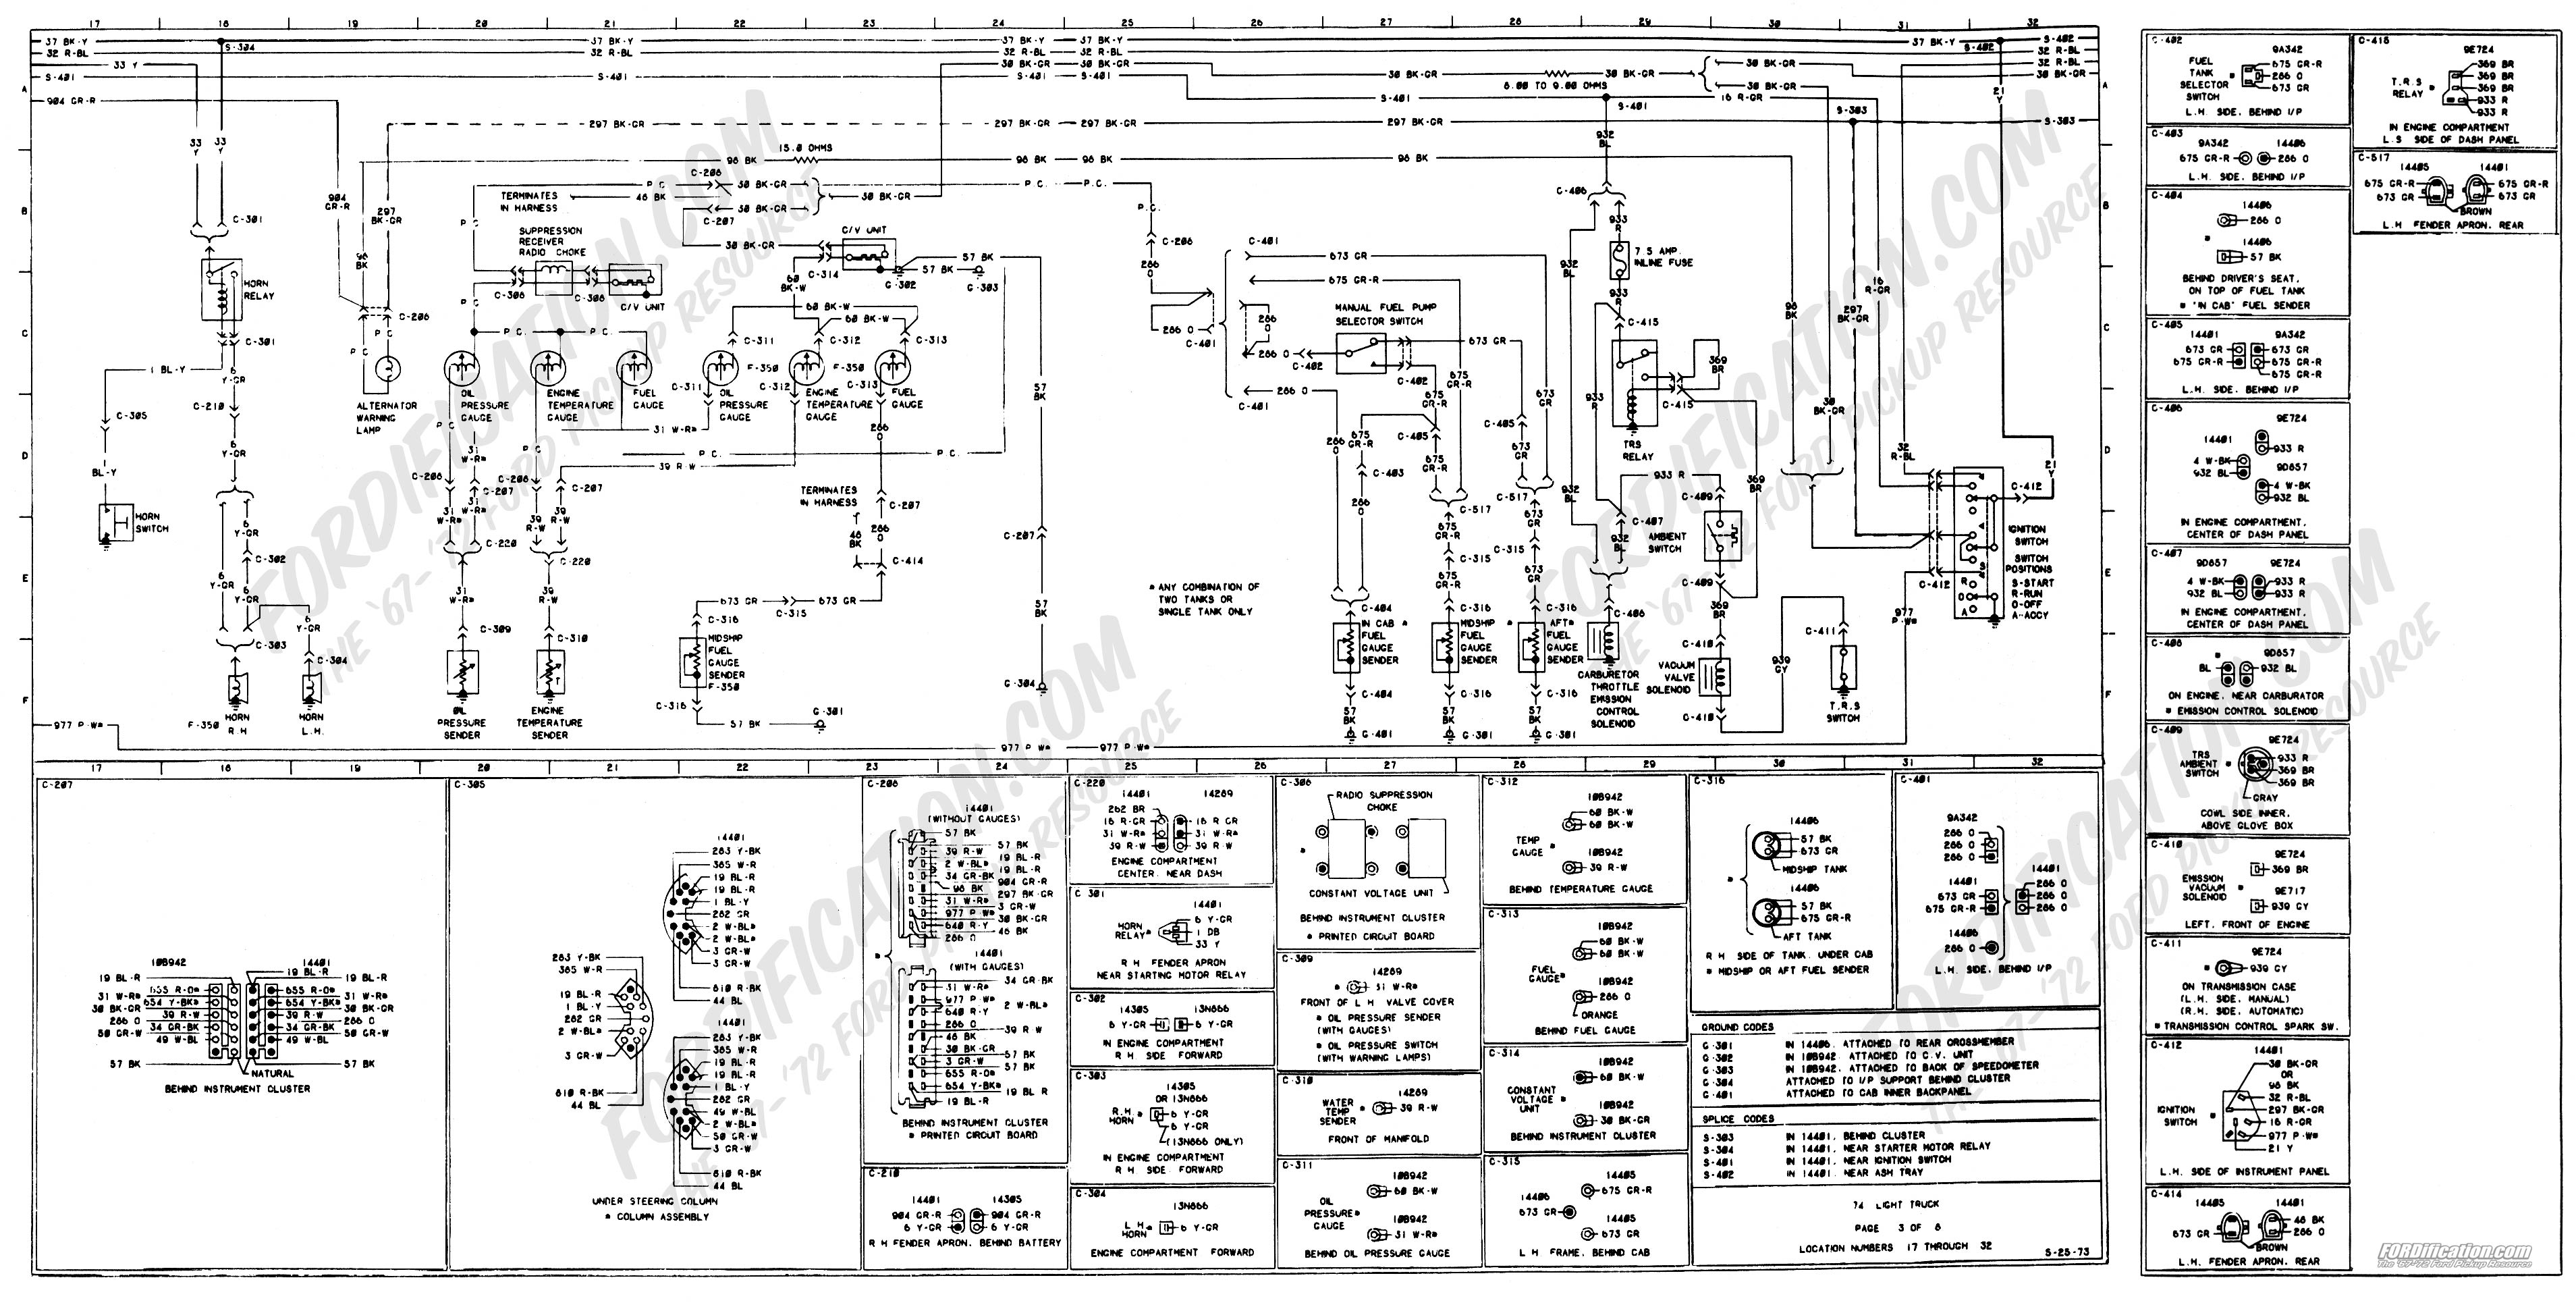 1973 Ford Truck Wiring Diagram Archive Of Automotive Yamaha Waveblaster 1979 Diagrams Schematics Fordification Net Rh